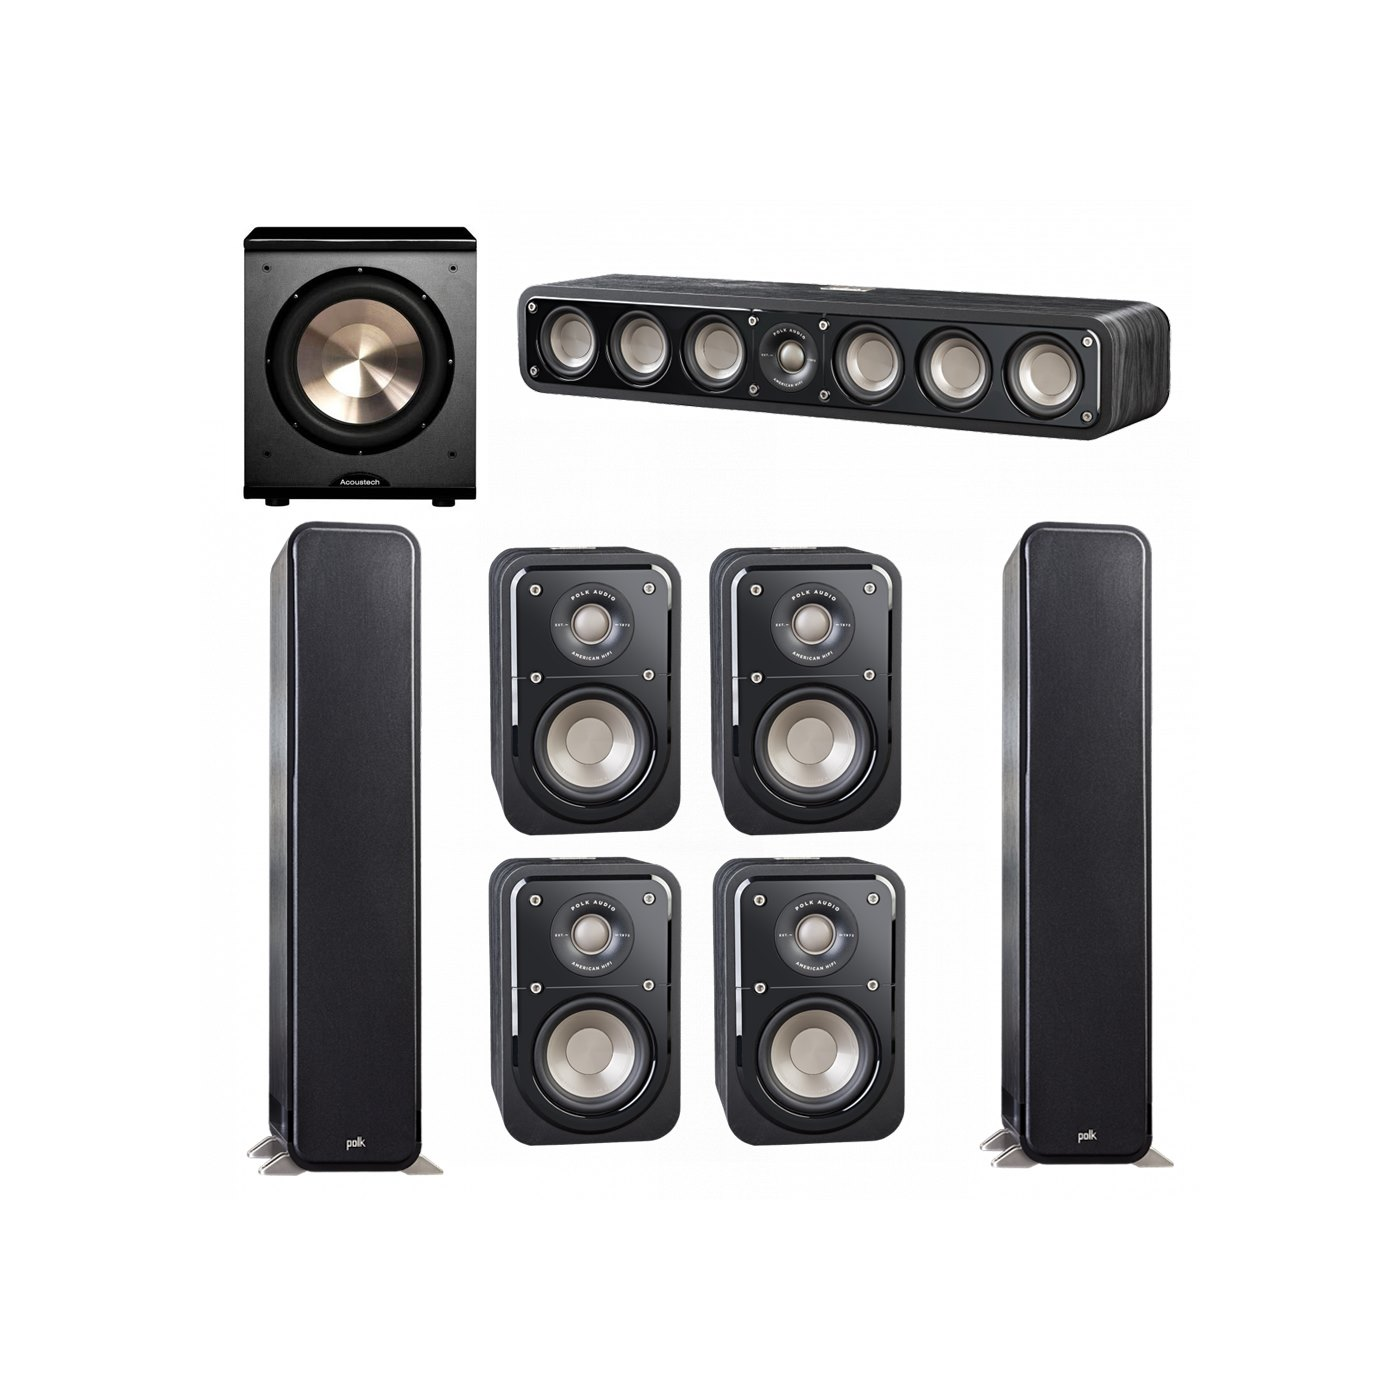 Polk Audio Signature 7.1 System with 2 S55 Tower Speaker, 1 Polk S35 Center Speaker, 4 Polk S10 Bookshelf Speaker, 1 BIC/Acoustech Platinum Series PL-200 Subwoofer